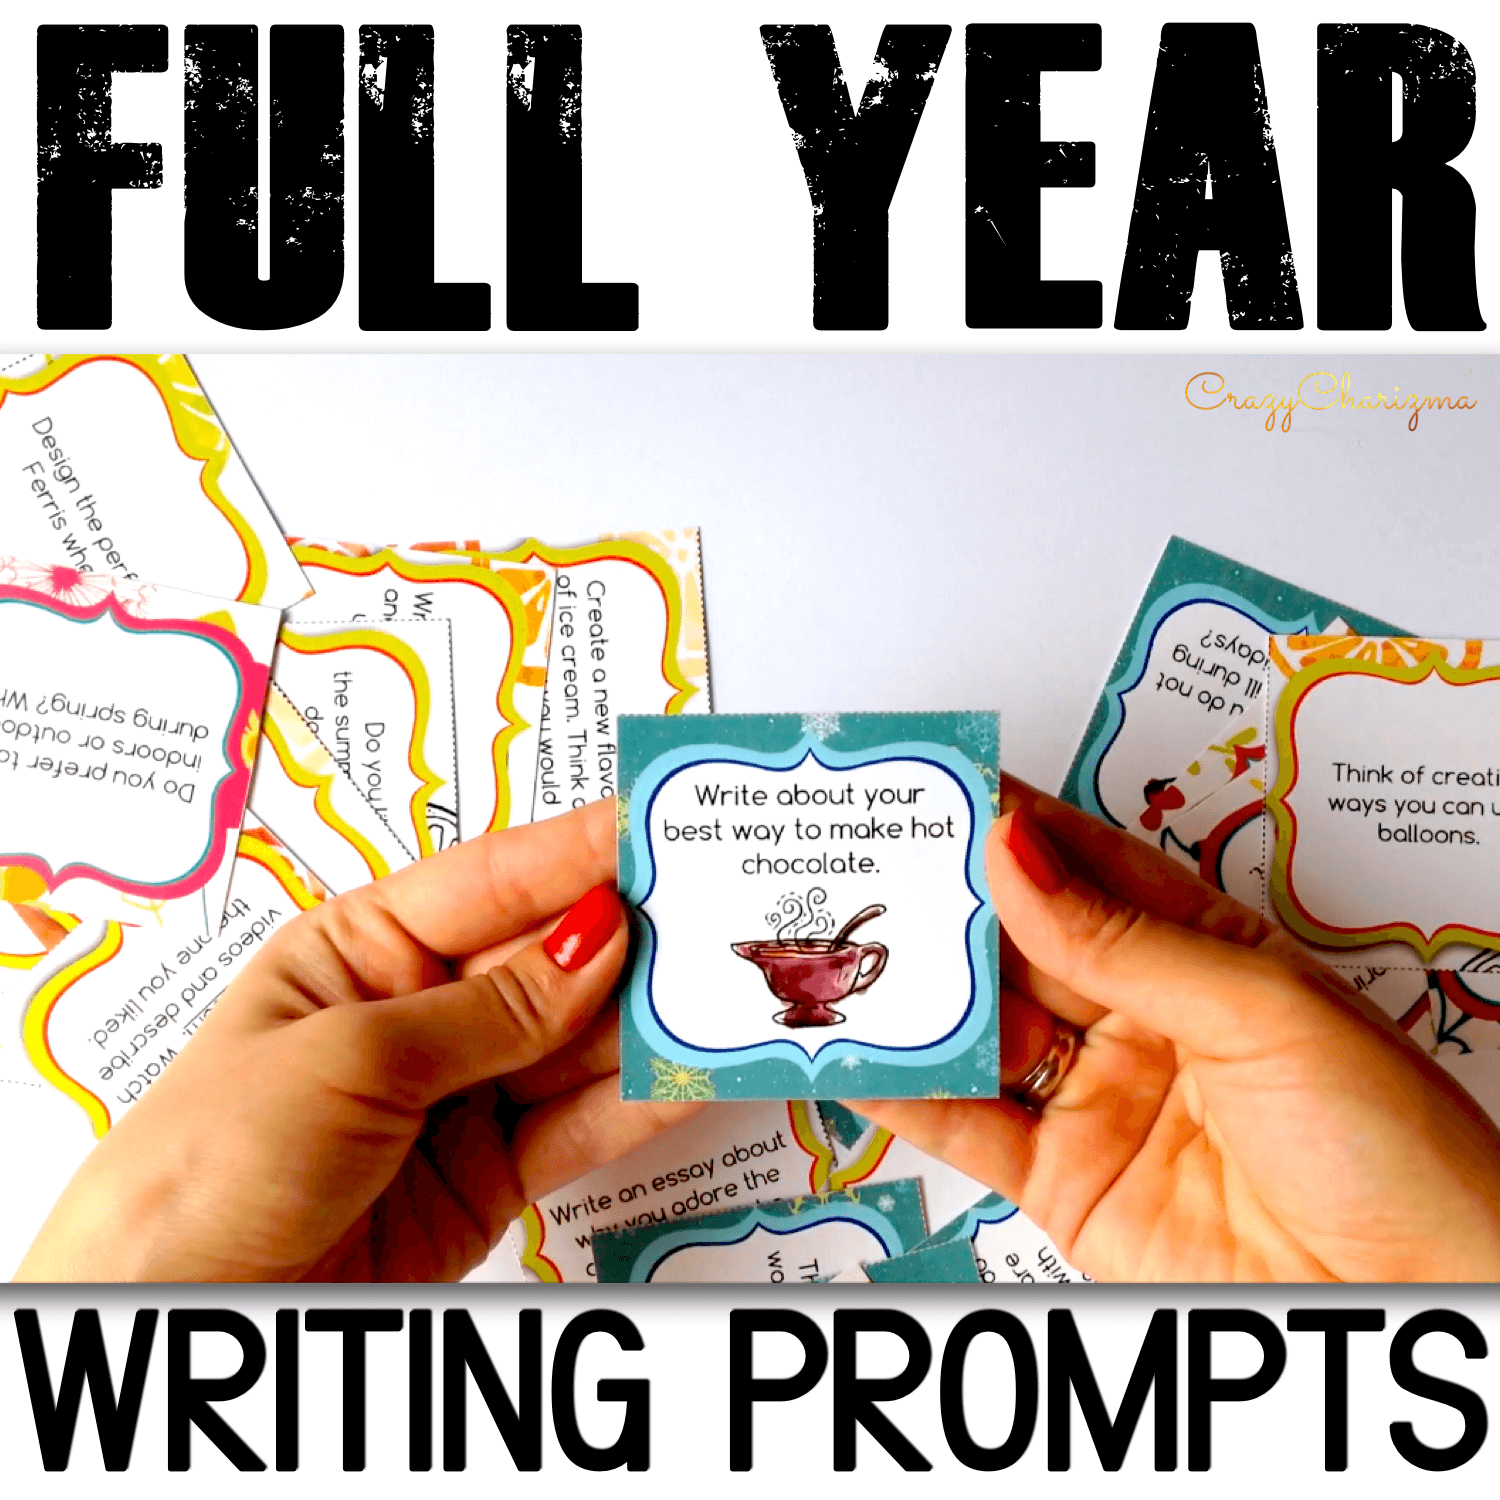 Looking for creative writing prompts for teens in middle school? Build essential writing and speaking skills from the beginning of the year to the last day of school. Perfect for small groups, as a homework assignment, as literacy centers or as independent centers work.